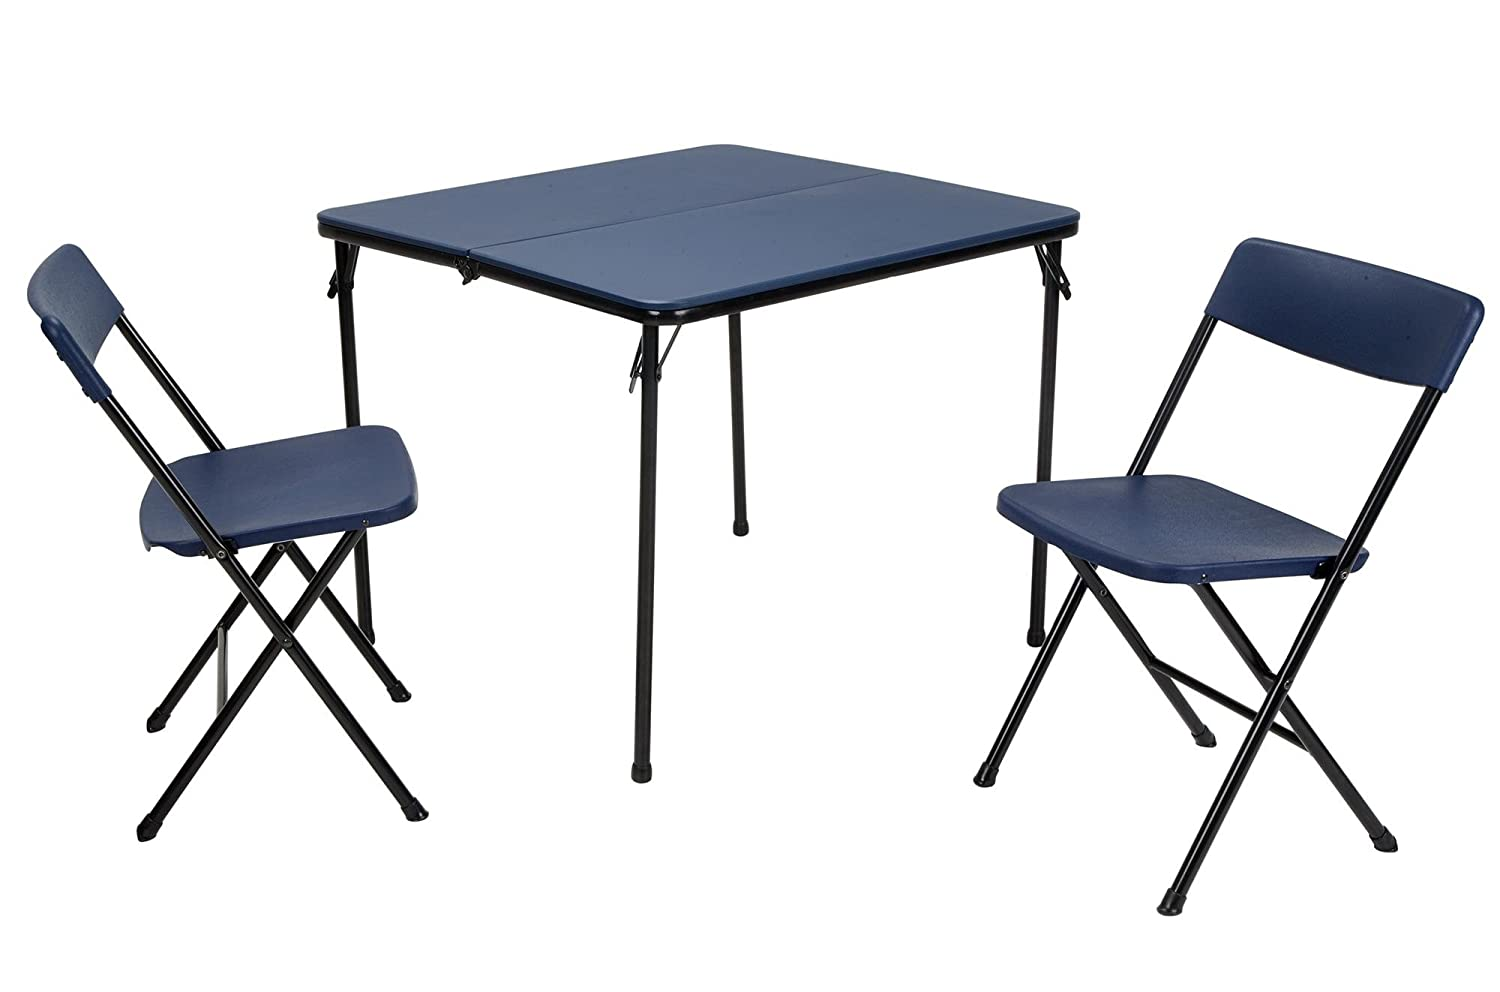 COSCO 3 Piece Indoor Outdoor Center Fold Table and 2 Chairs Tailgate Set, Dark Blue, Black Frame